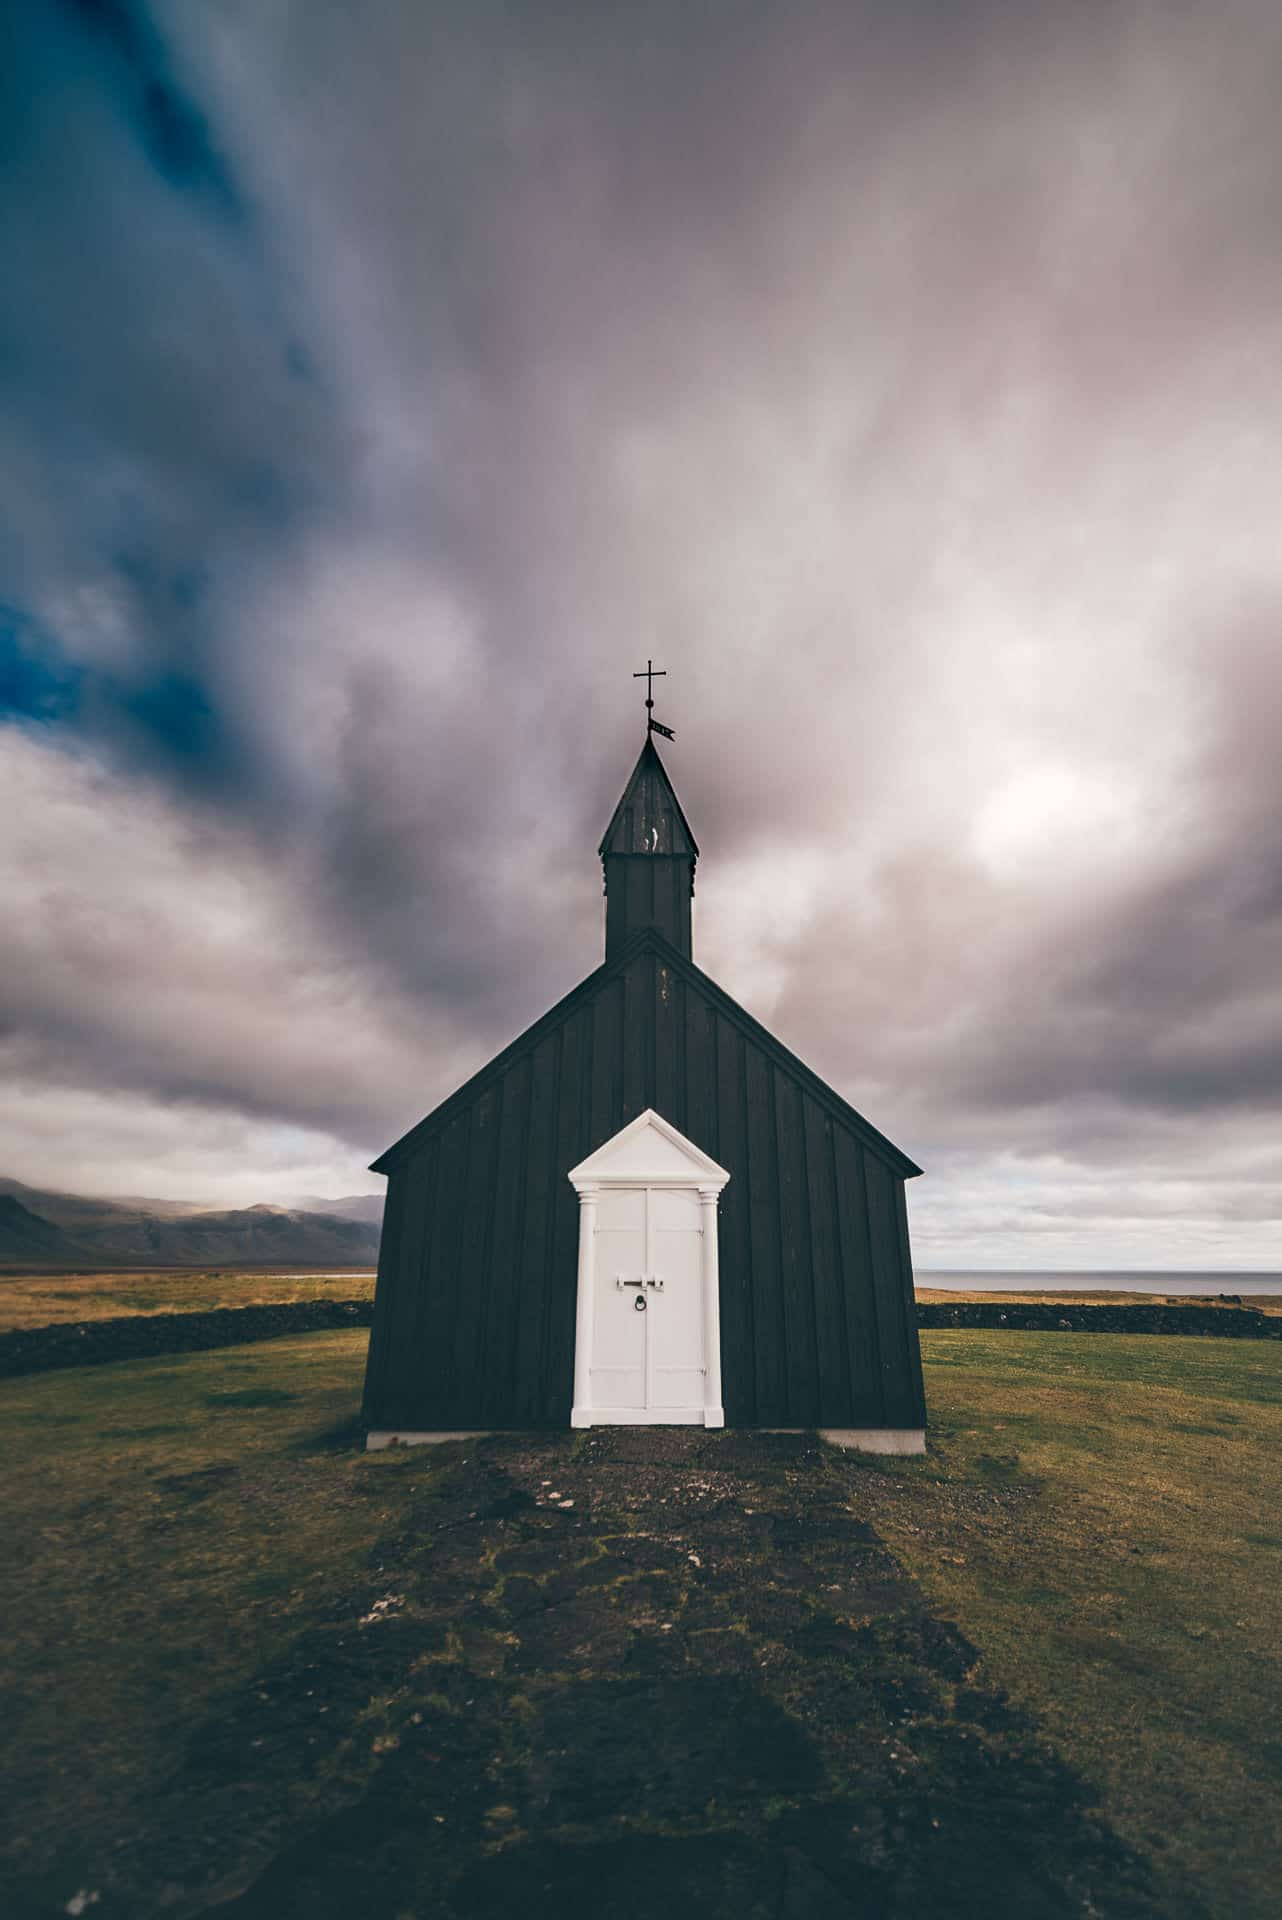 Destination-Wedding-Photographer-Iceland-Budir-BlackChurch-MathiasBrabetz-1